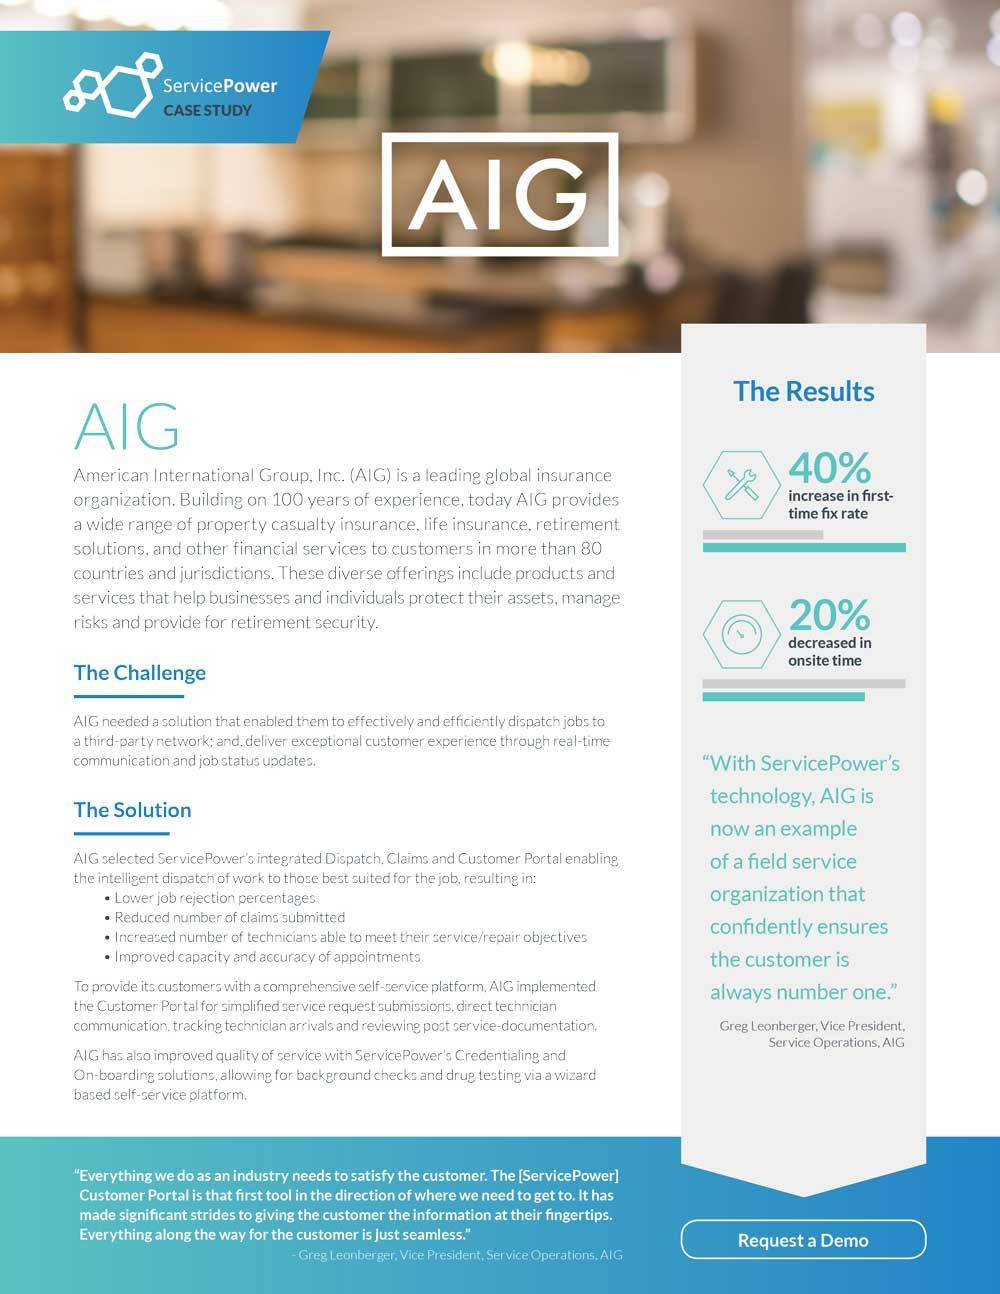 AIG Increases First Time Fix Rates